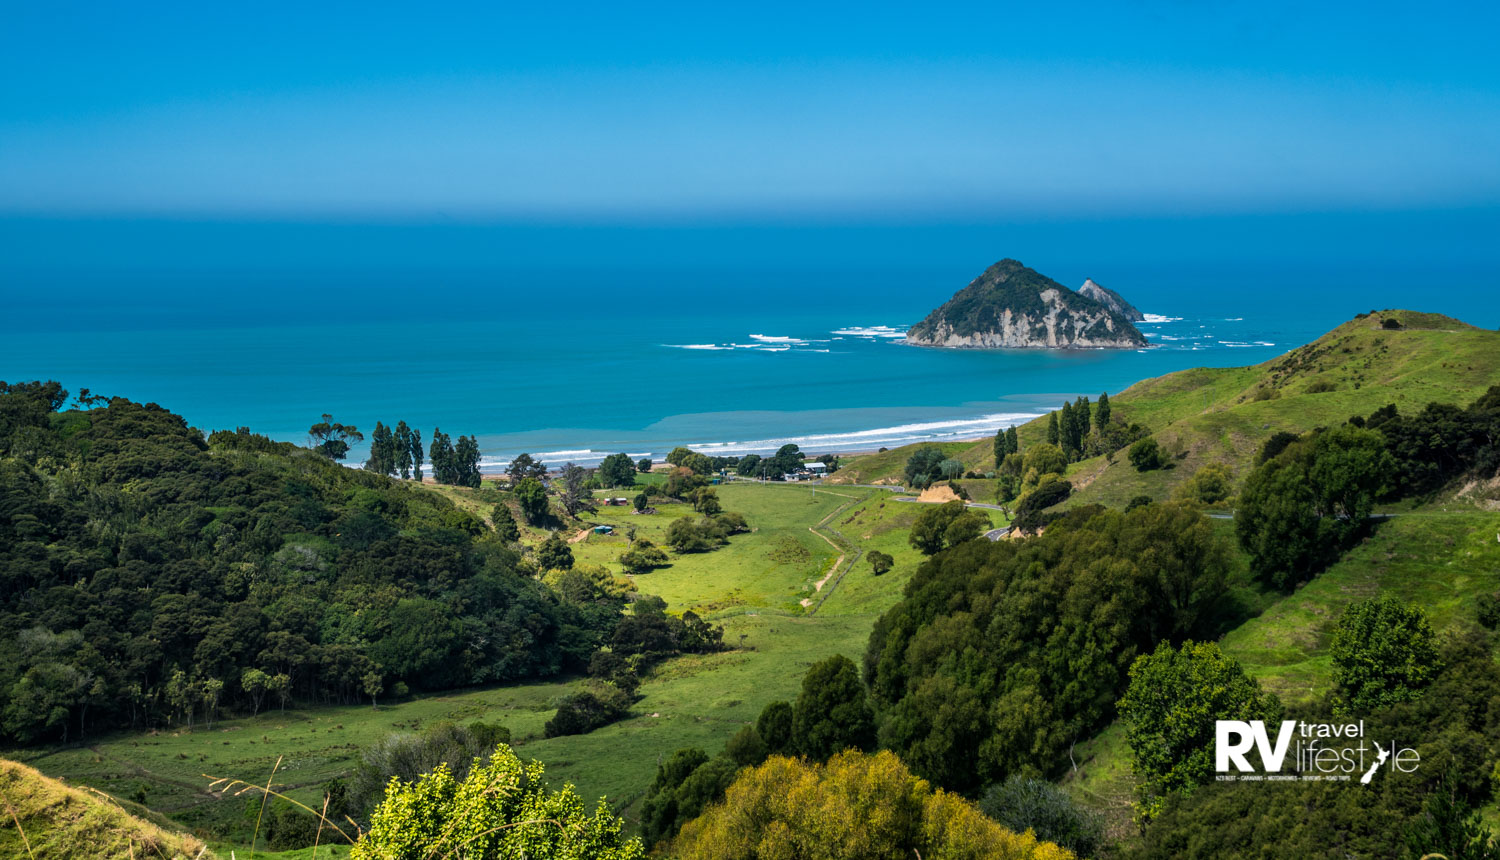 Stunning views await you as you wind your way to Anaura Bay